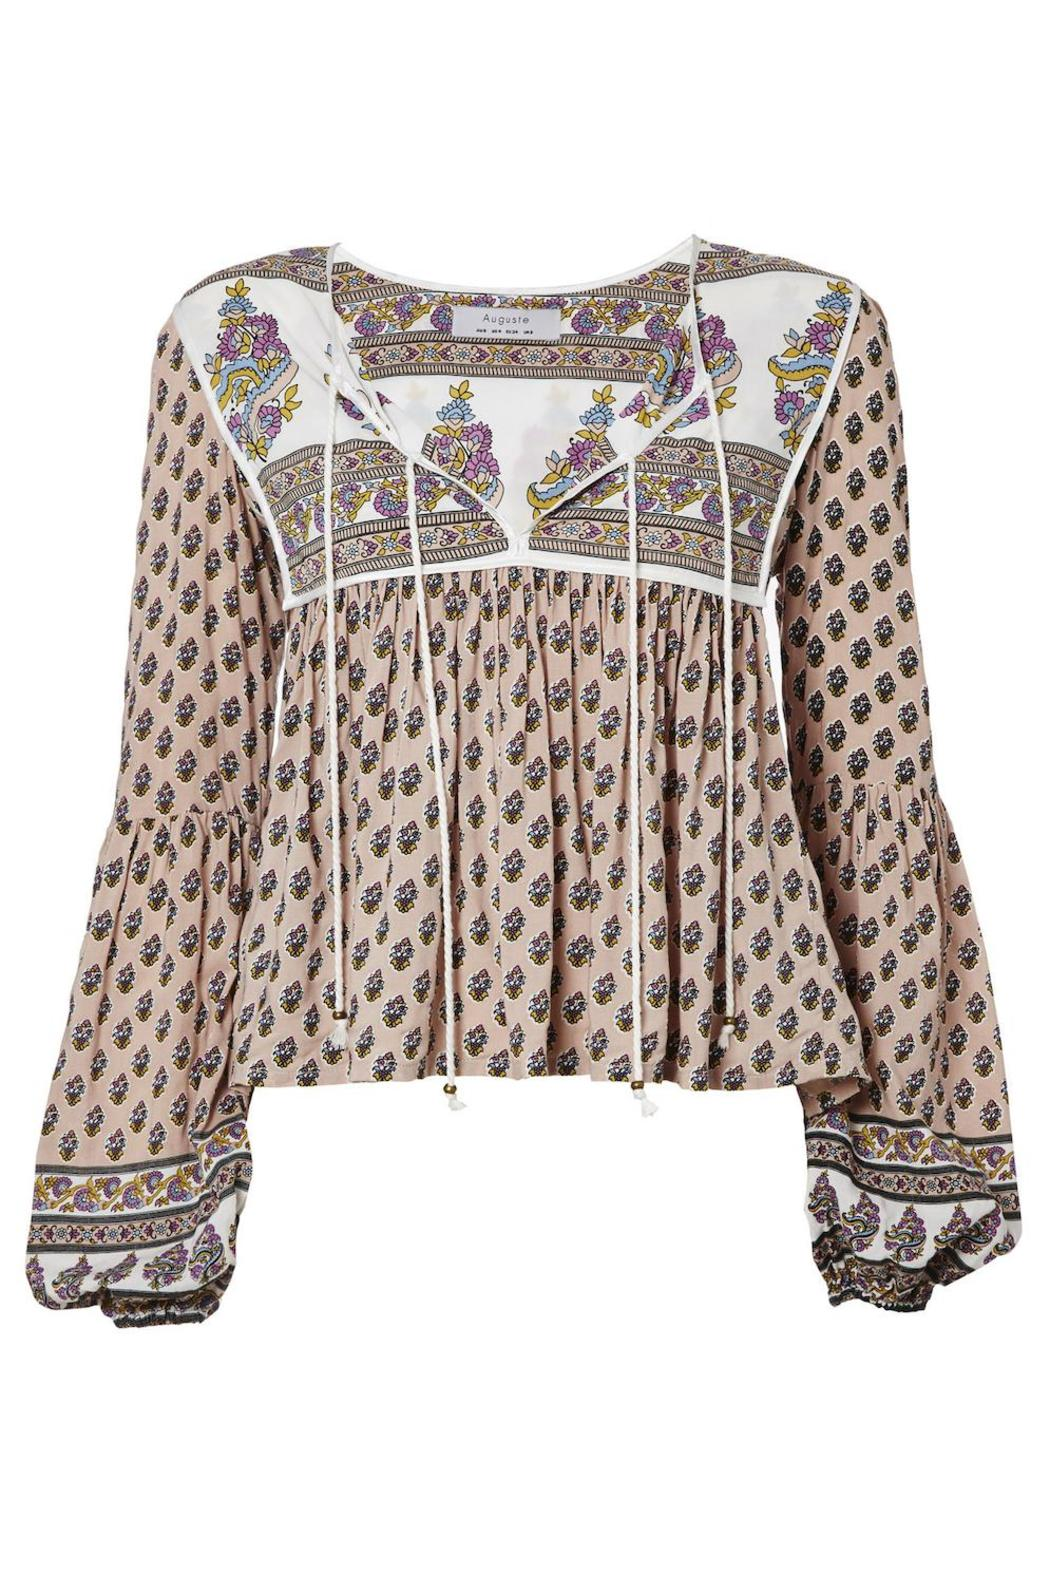 Auguste The Label  Open-Road Boho Blouse - Main Image